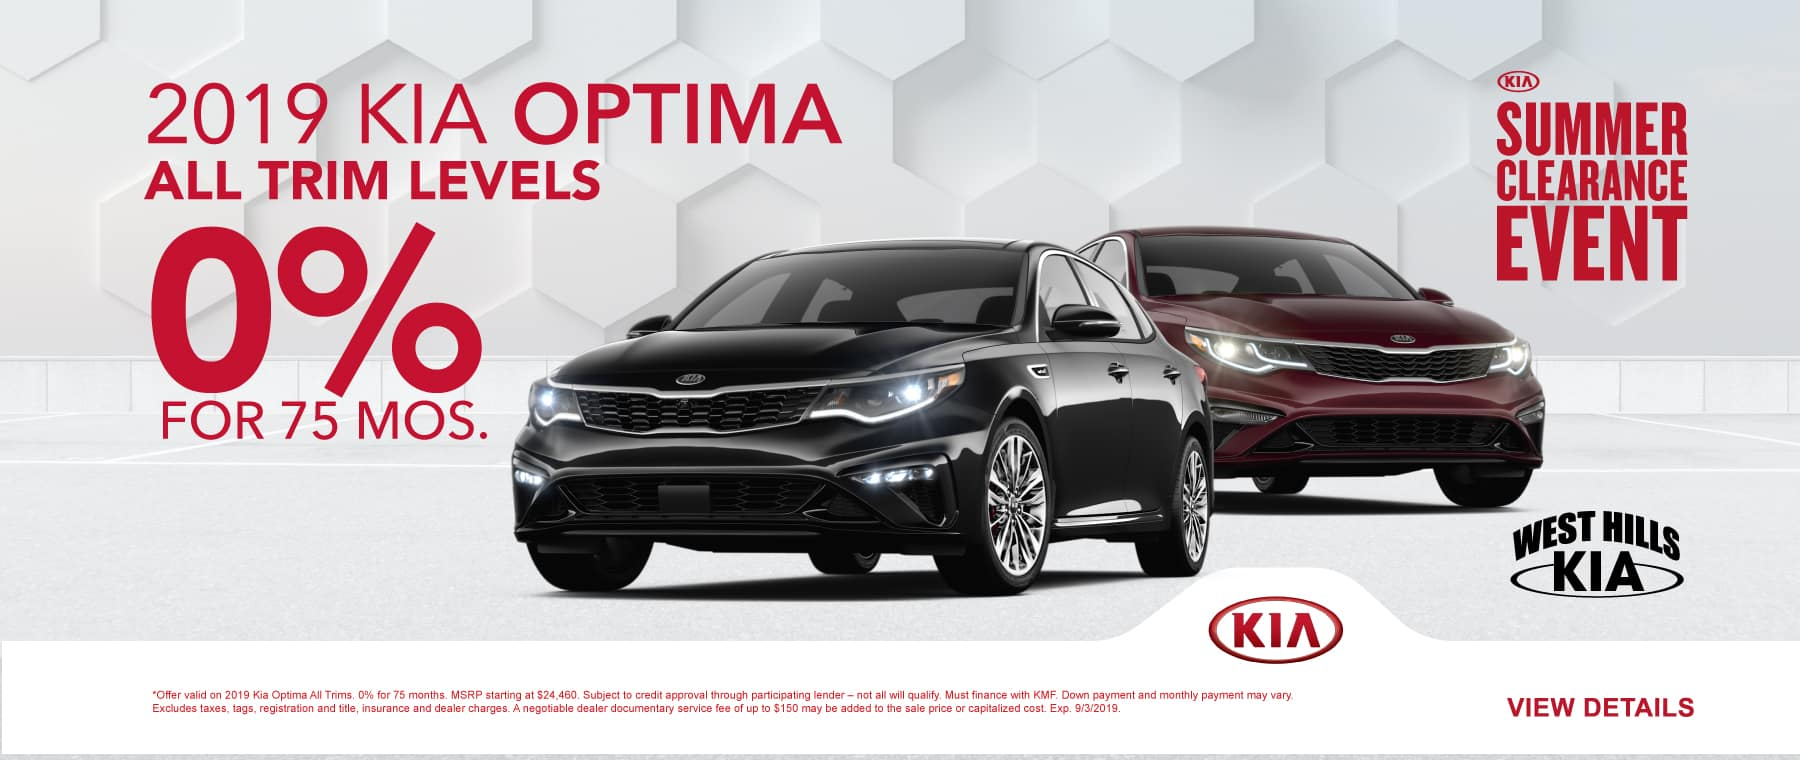 2019 Kia Optima All Trims  * 0% for 75 months   *Offer valid on 2019 Kia Optima All Trims. 0% for 75 months. MSRP starting at $24,460. Subject to credit approval through participating lender – not all will qualify. Must finance with KMF. Down payment and monthly payment may vary. Excludes taxes, tags, registration and title, insurance and dealer charges. A negotiable dealer documentary service fee of up to $150 may be added to the sale price or capitalized cost. Exp. 9/3/2019.